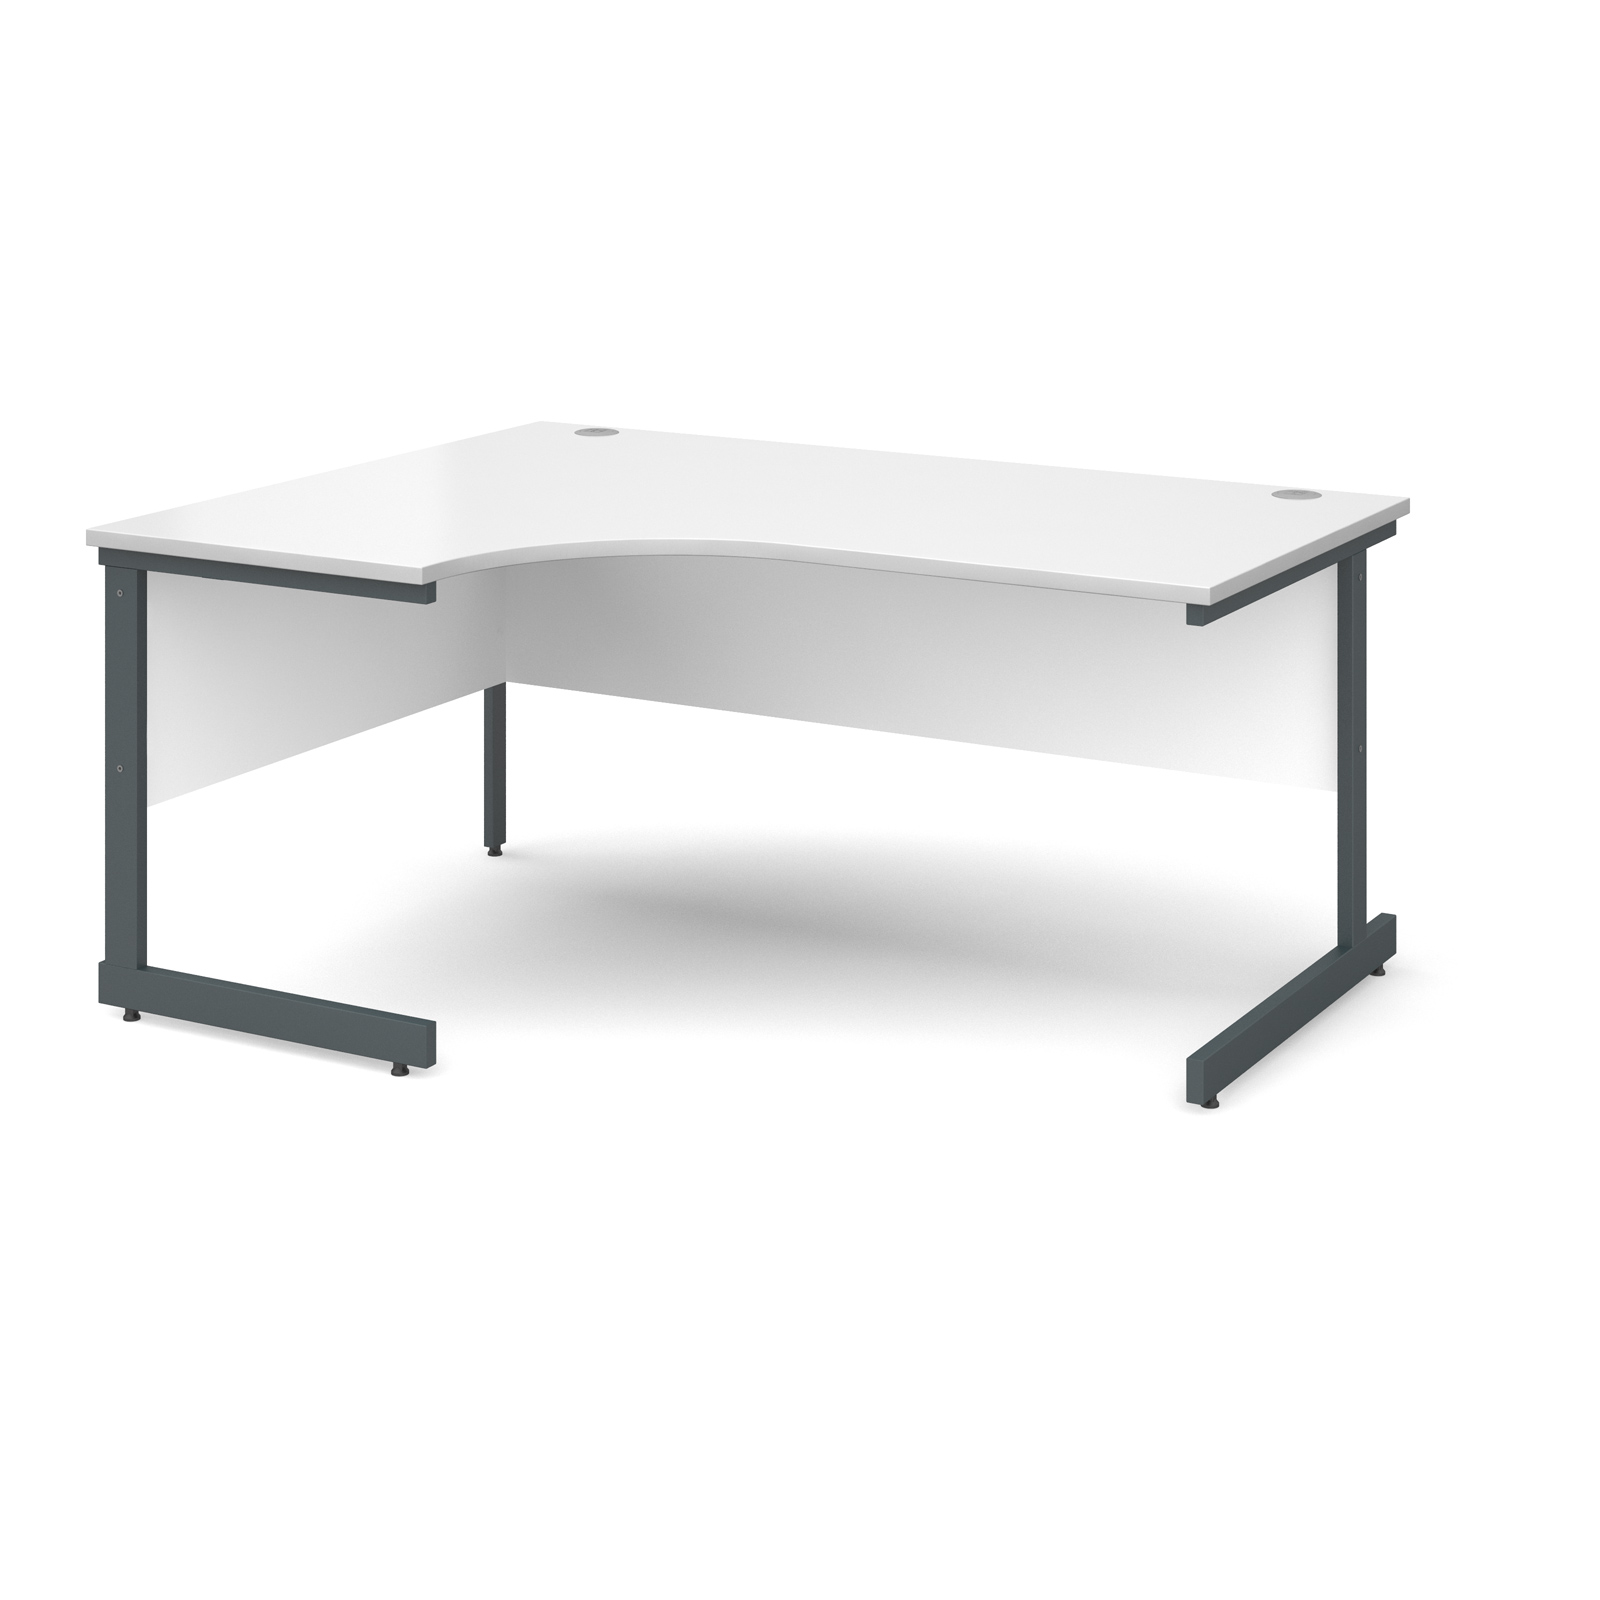 Contract 25 left hand ergonomic desk 1600mm - graphite cantilever frame, white top